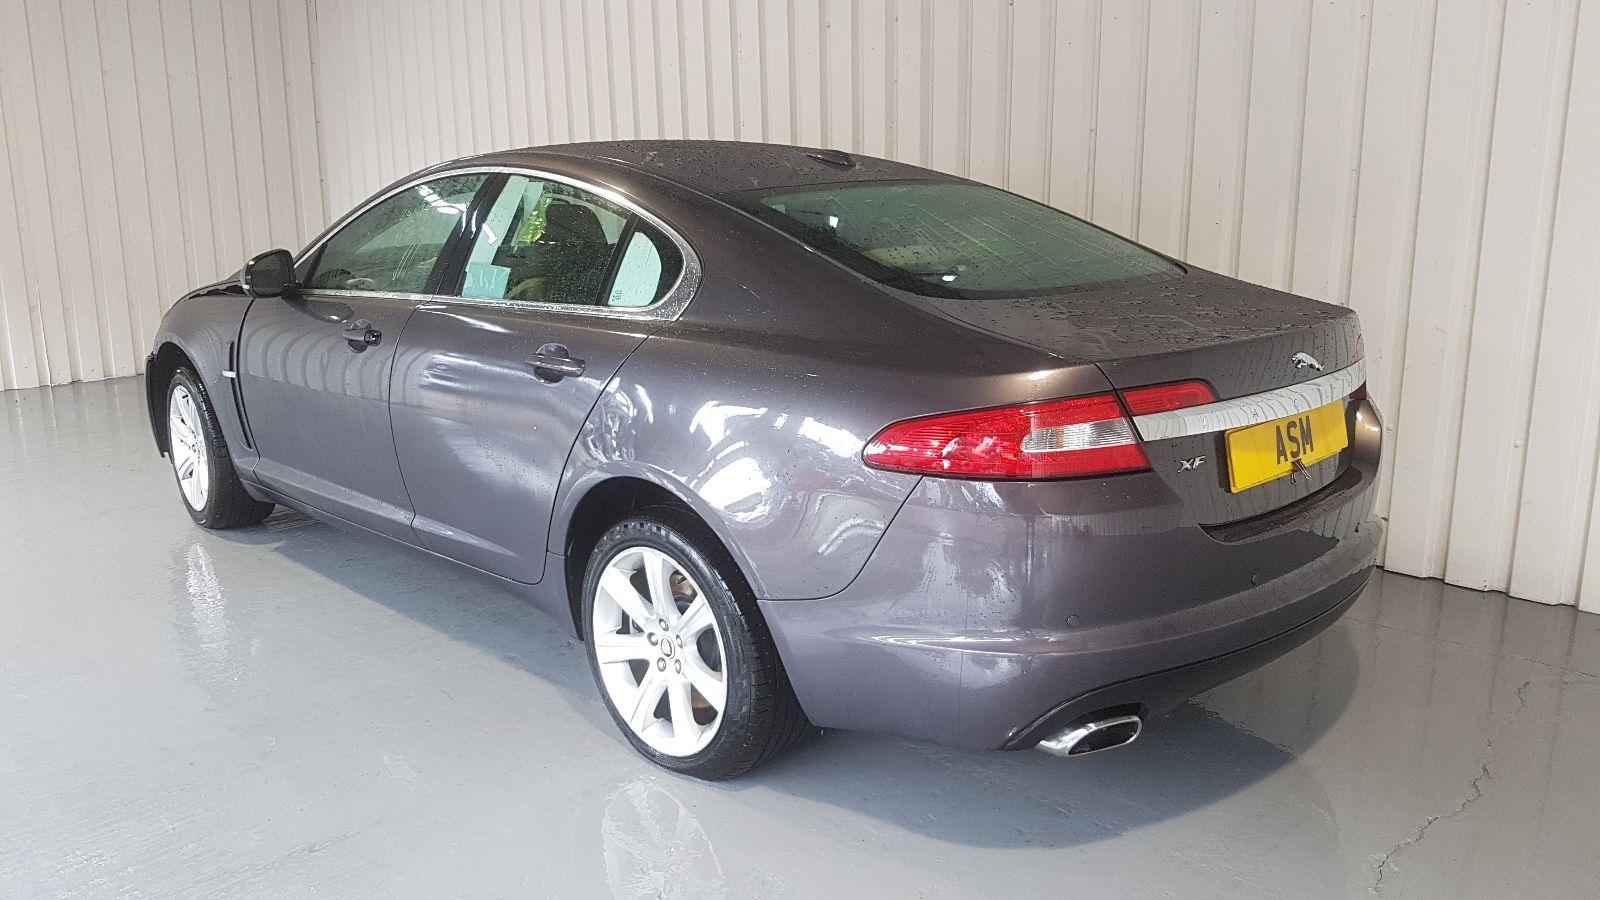 View Auto part Jaguar Xf 2009 4 Door Saloon